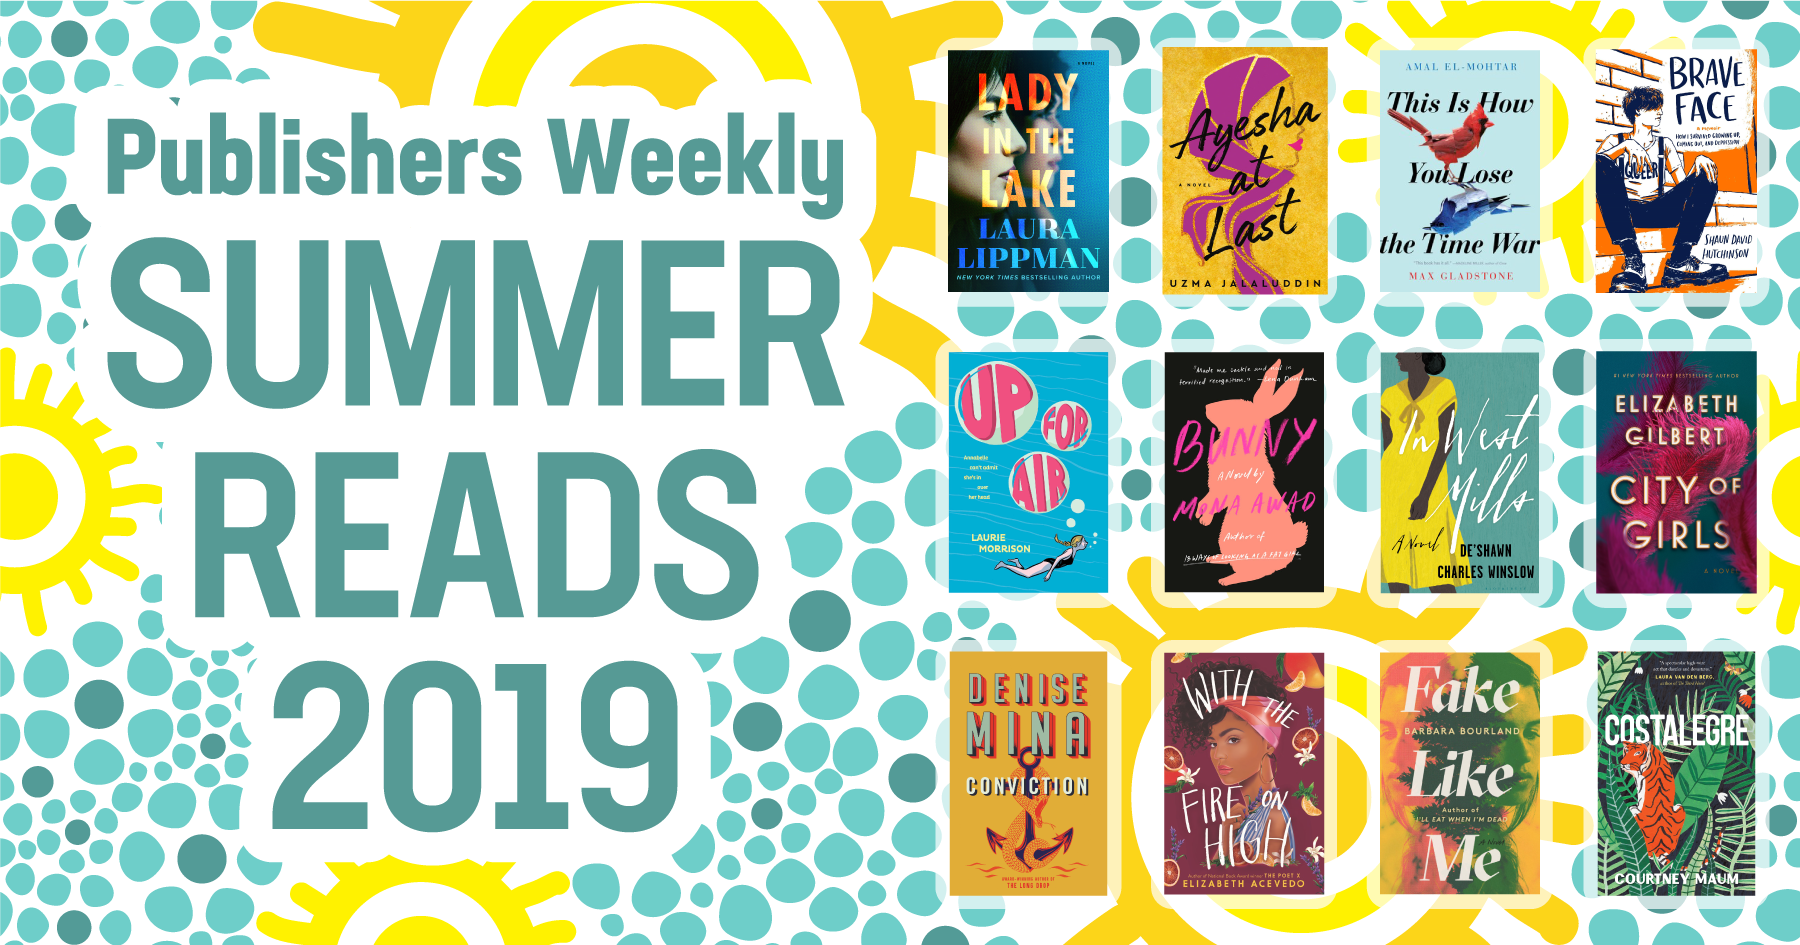 Best Books Summer 2019 from Publishers Weekly : Publishers Weekly